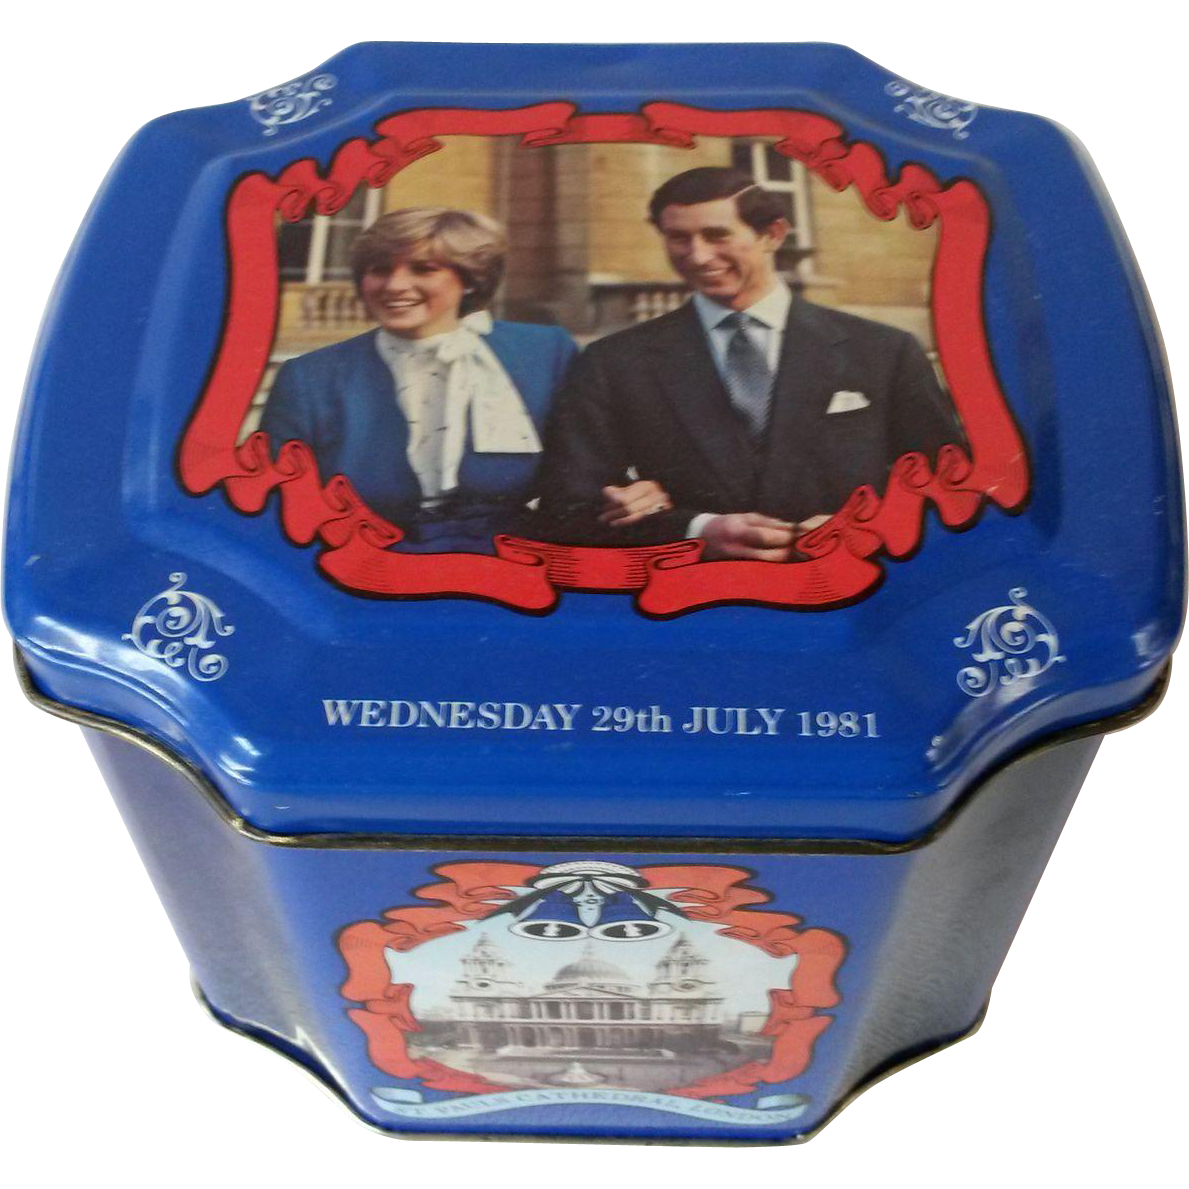 Prince Charles and Diana Wedding Commemorative Tea/Biscuit Tin 1981